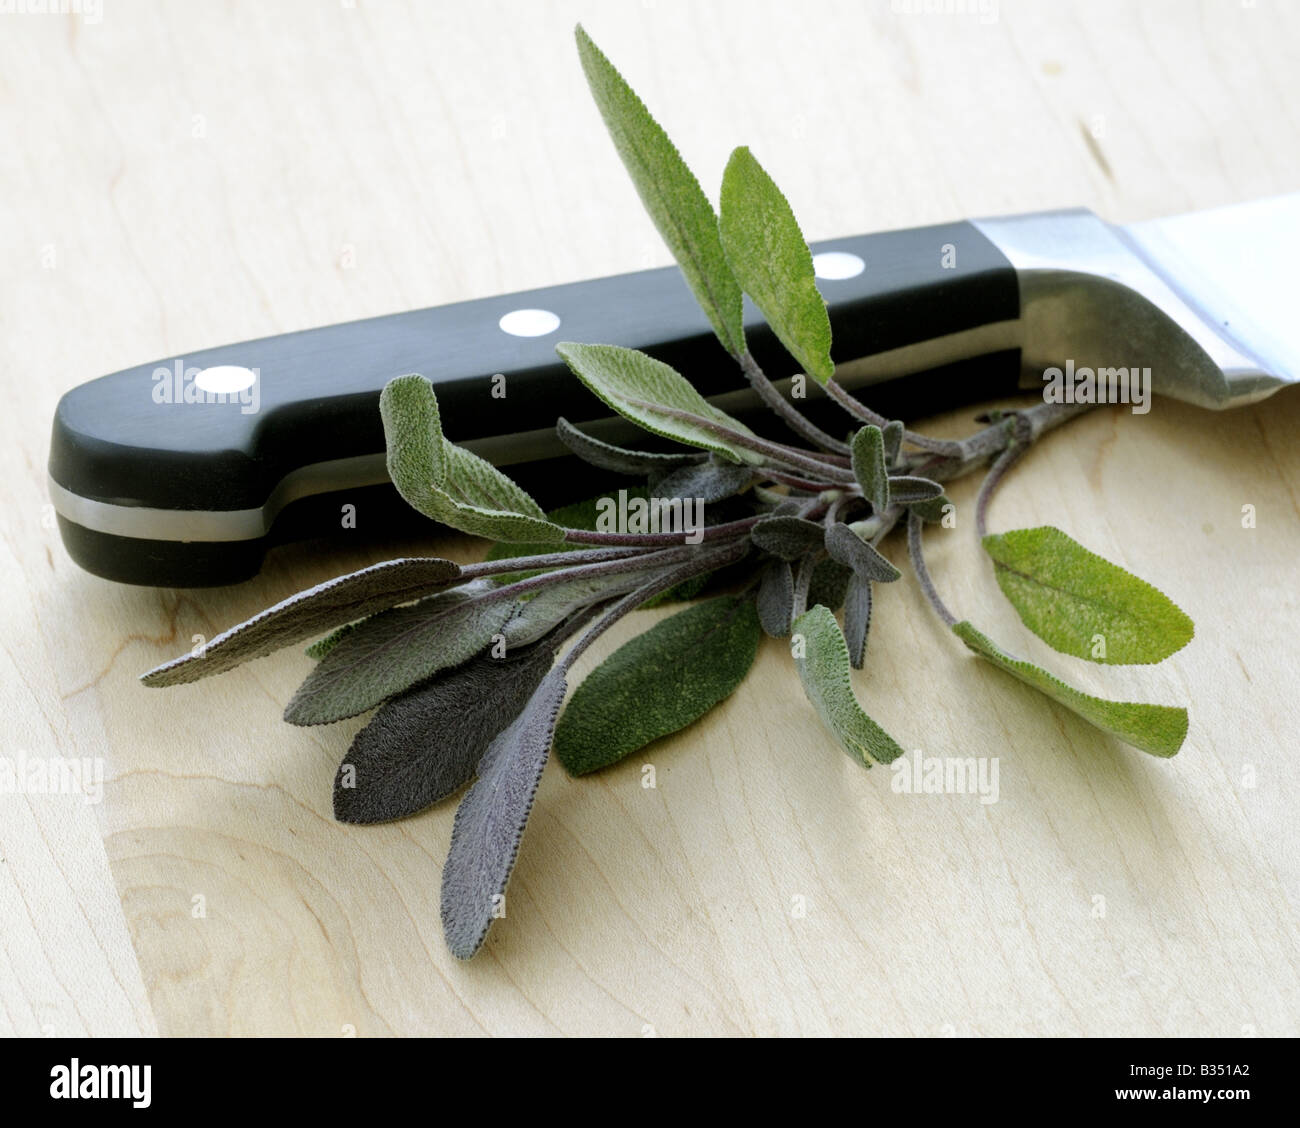 CULINARY HERBS HERB SAGE Salvia officinalis One of the most popular herbs used in cooking - Stock Image